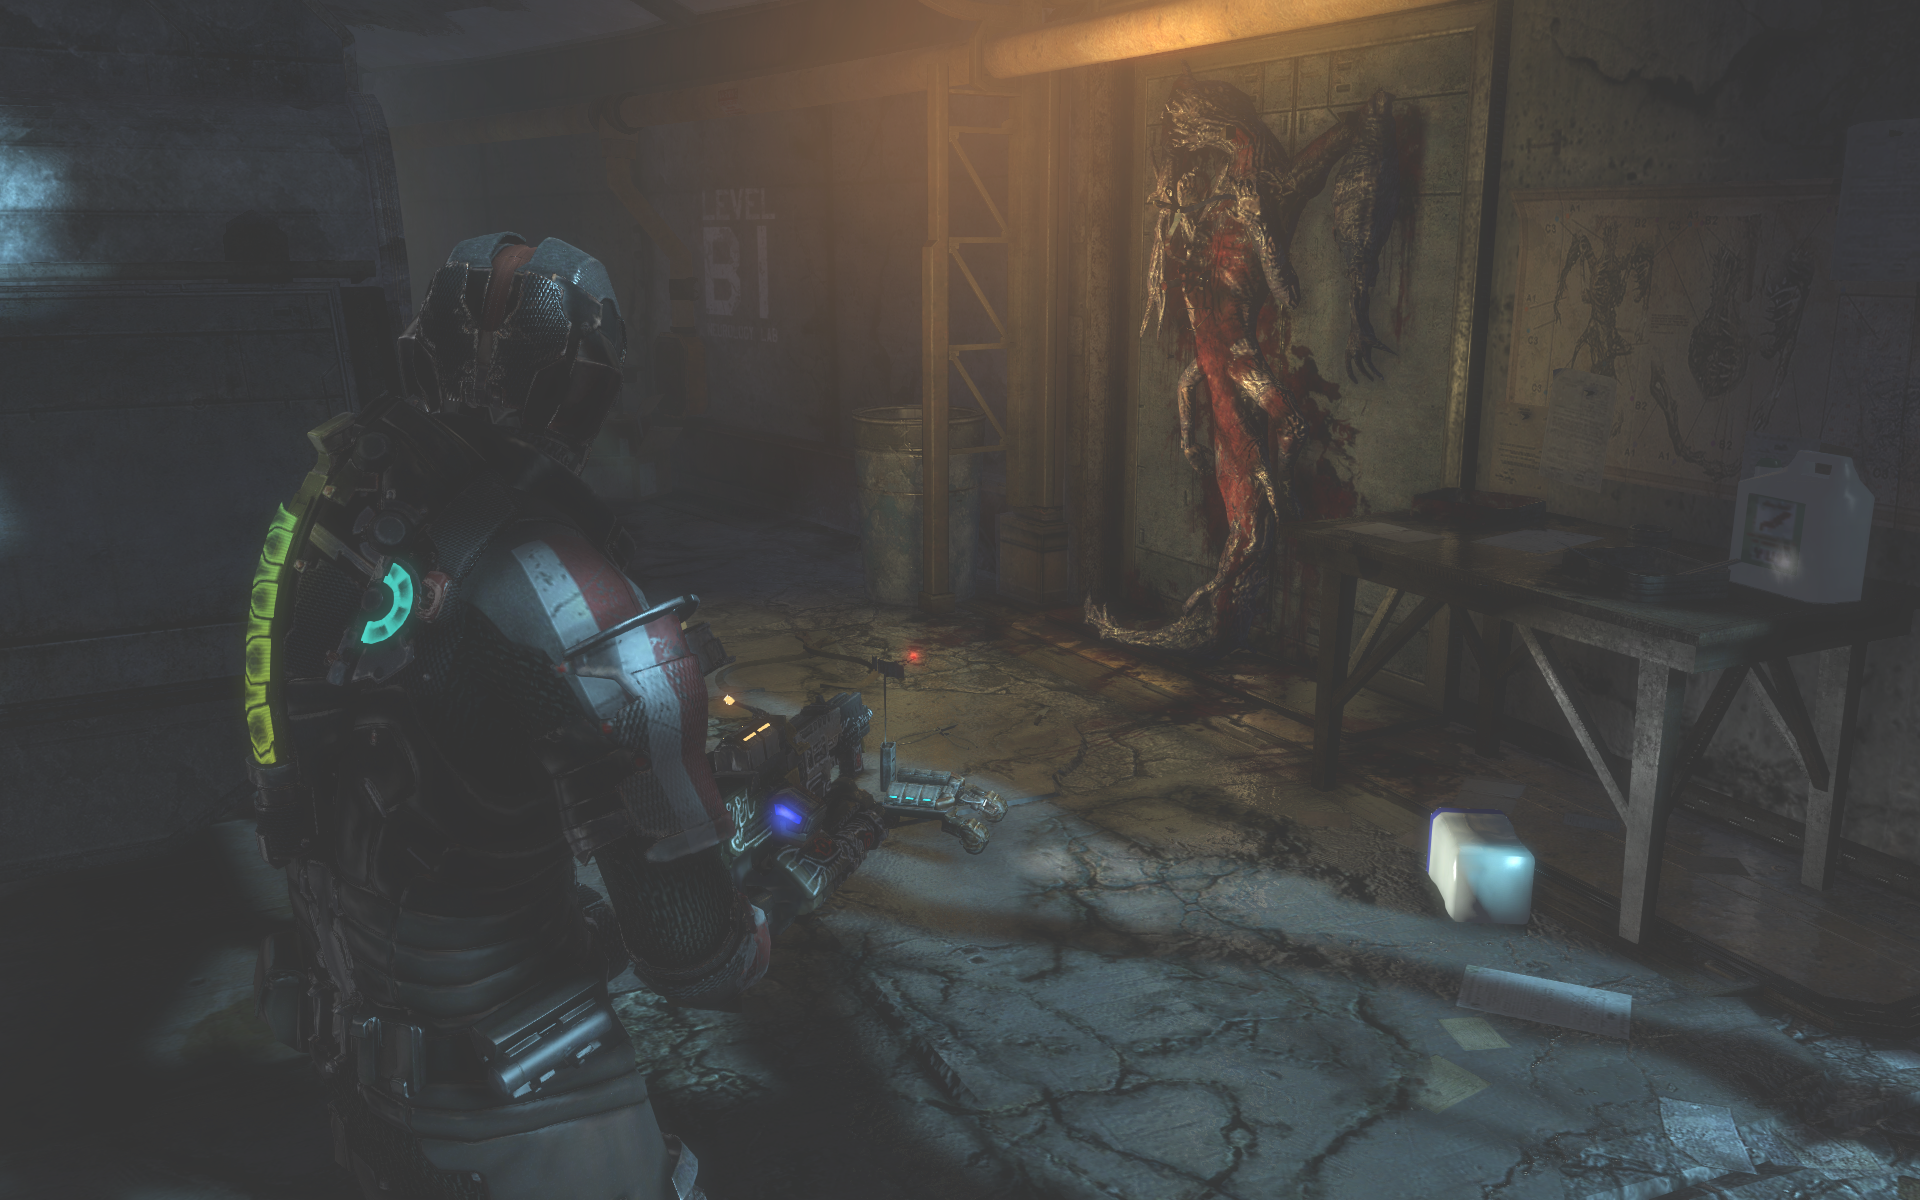 deadspace3 2013-03-05 13-49-54-73-crushed